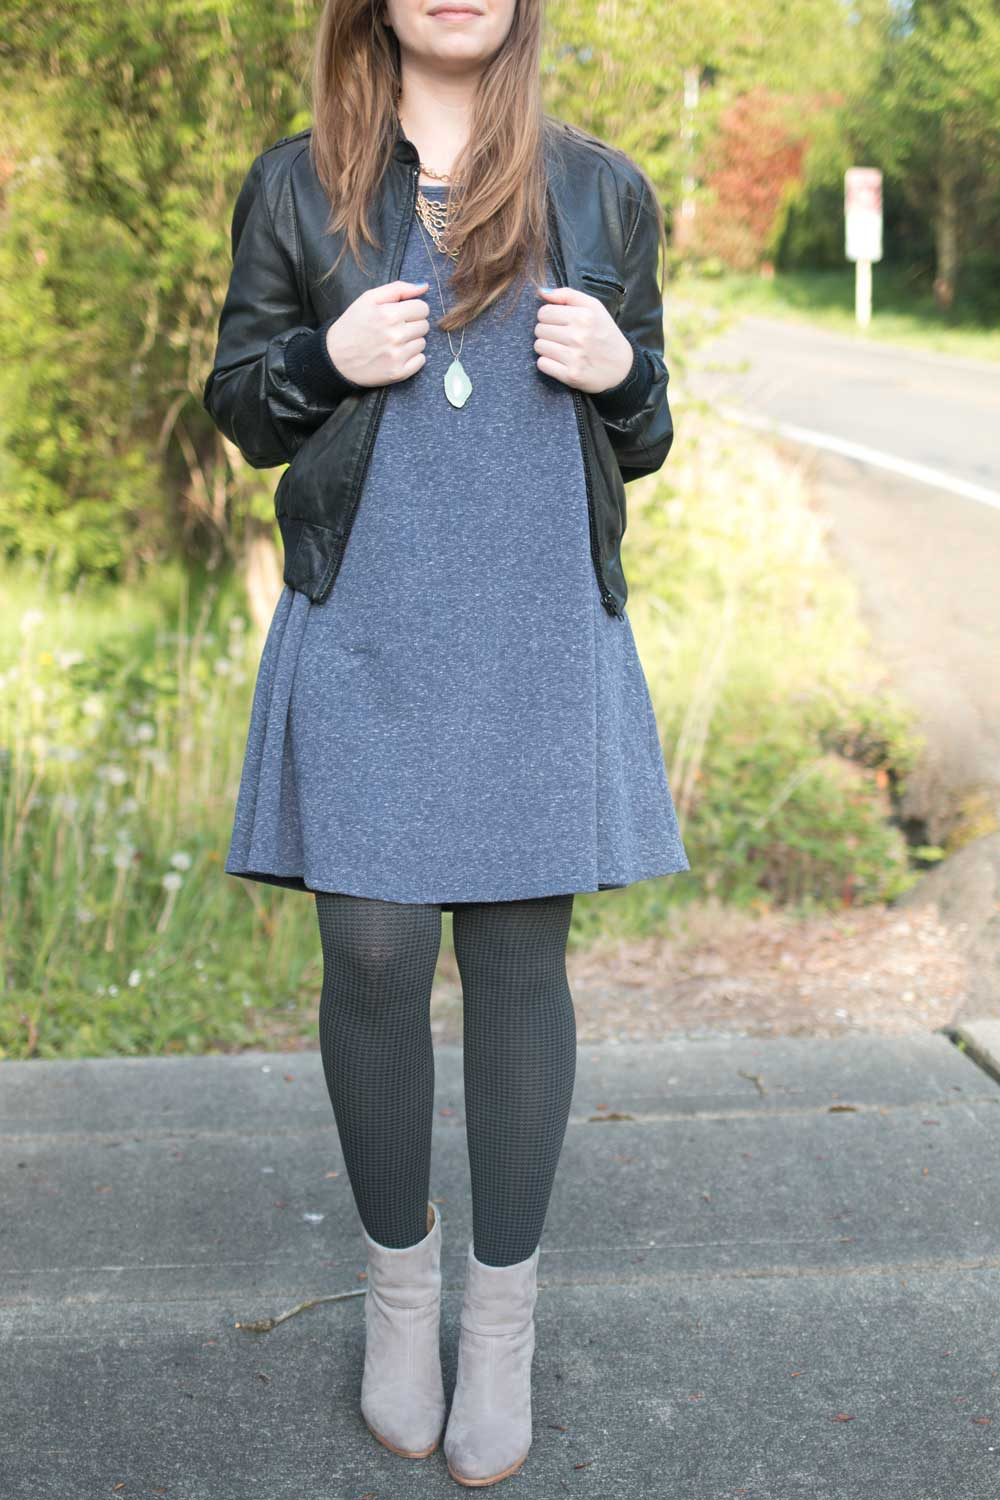 Patterned Tia Tights Outfit with Swing Dress & Rag + Bone Newbury Booties / hellorigby seattle fashion and style blog